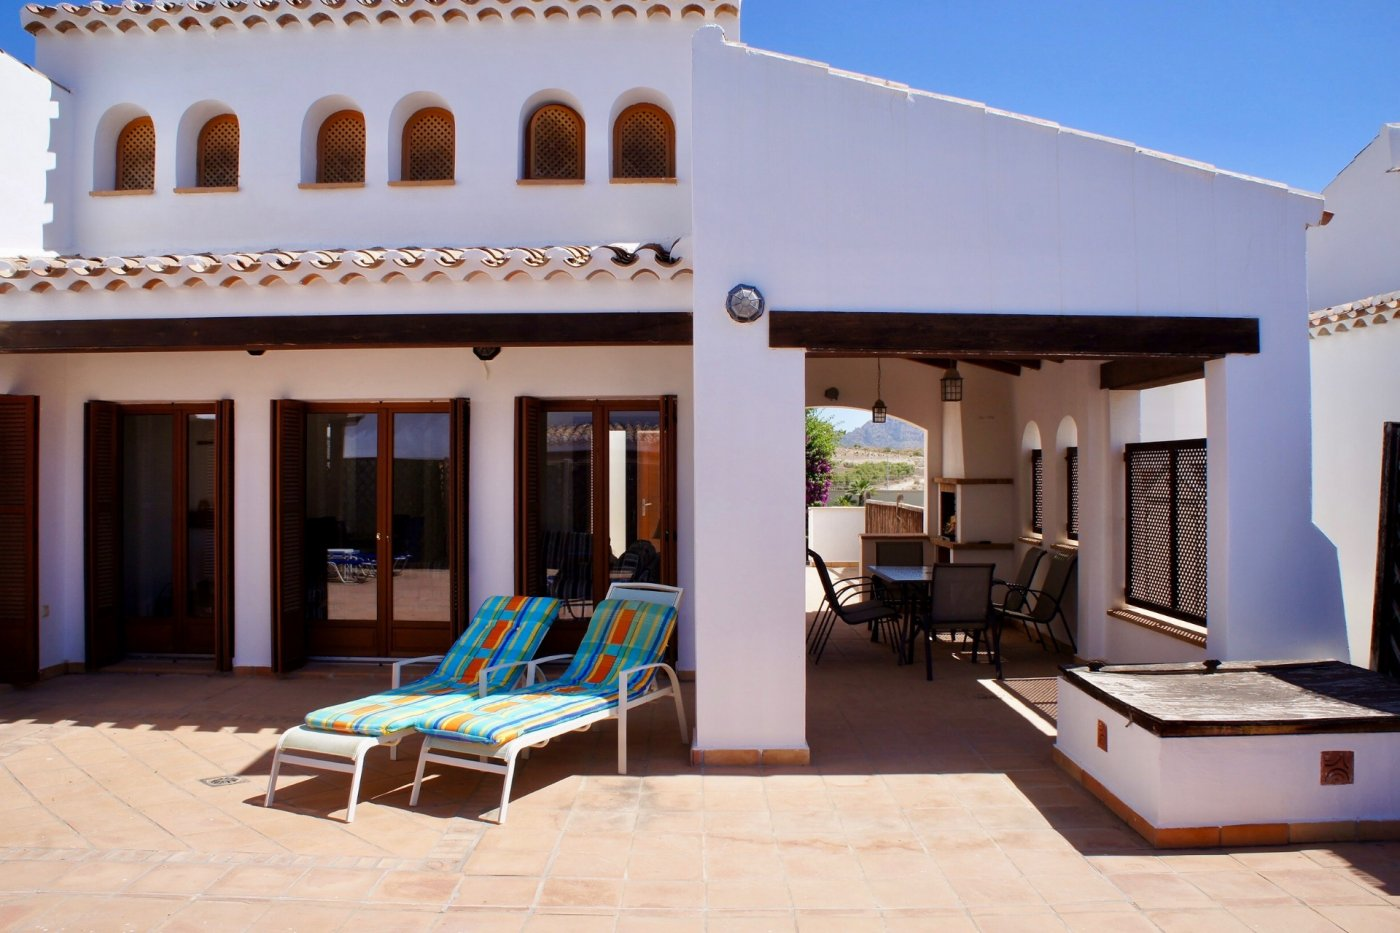 Villa ref 3265-02924 for sale in El Valle Golf Resort Spain - Quality Homes Costa Cálida